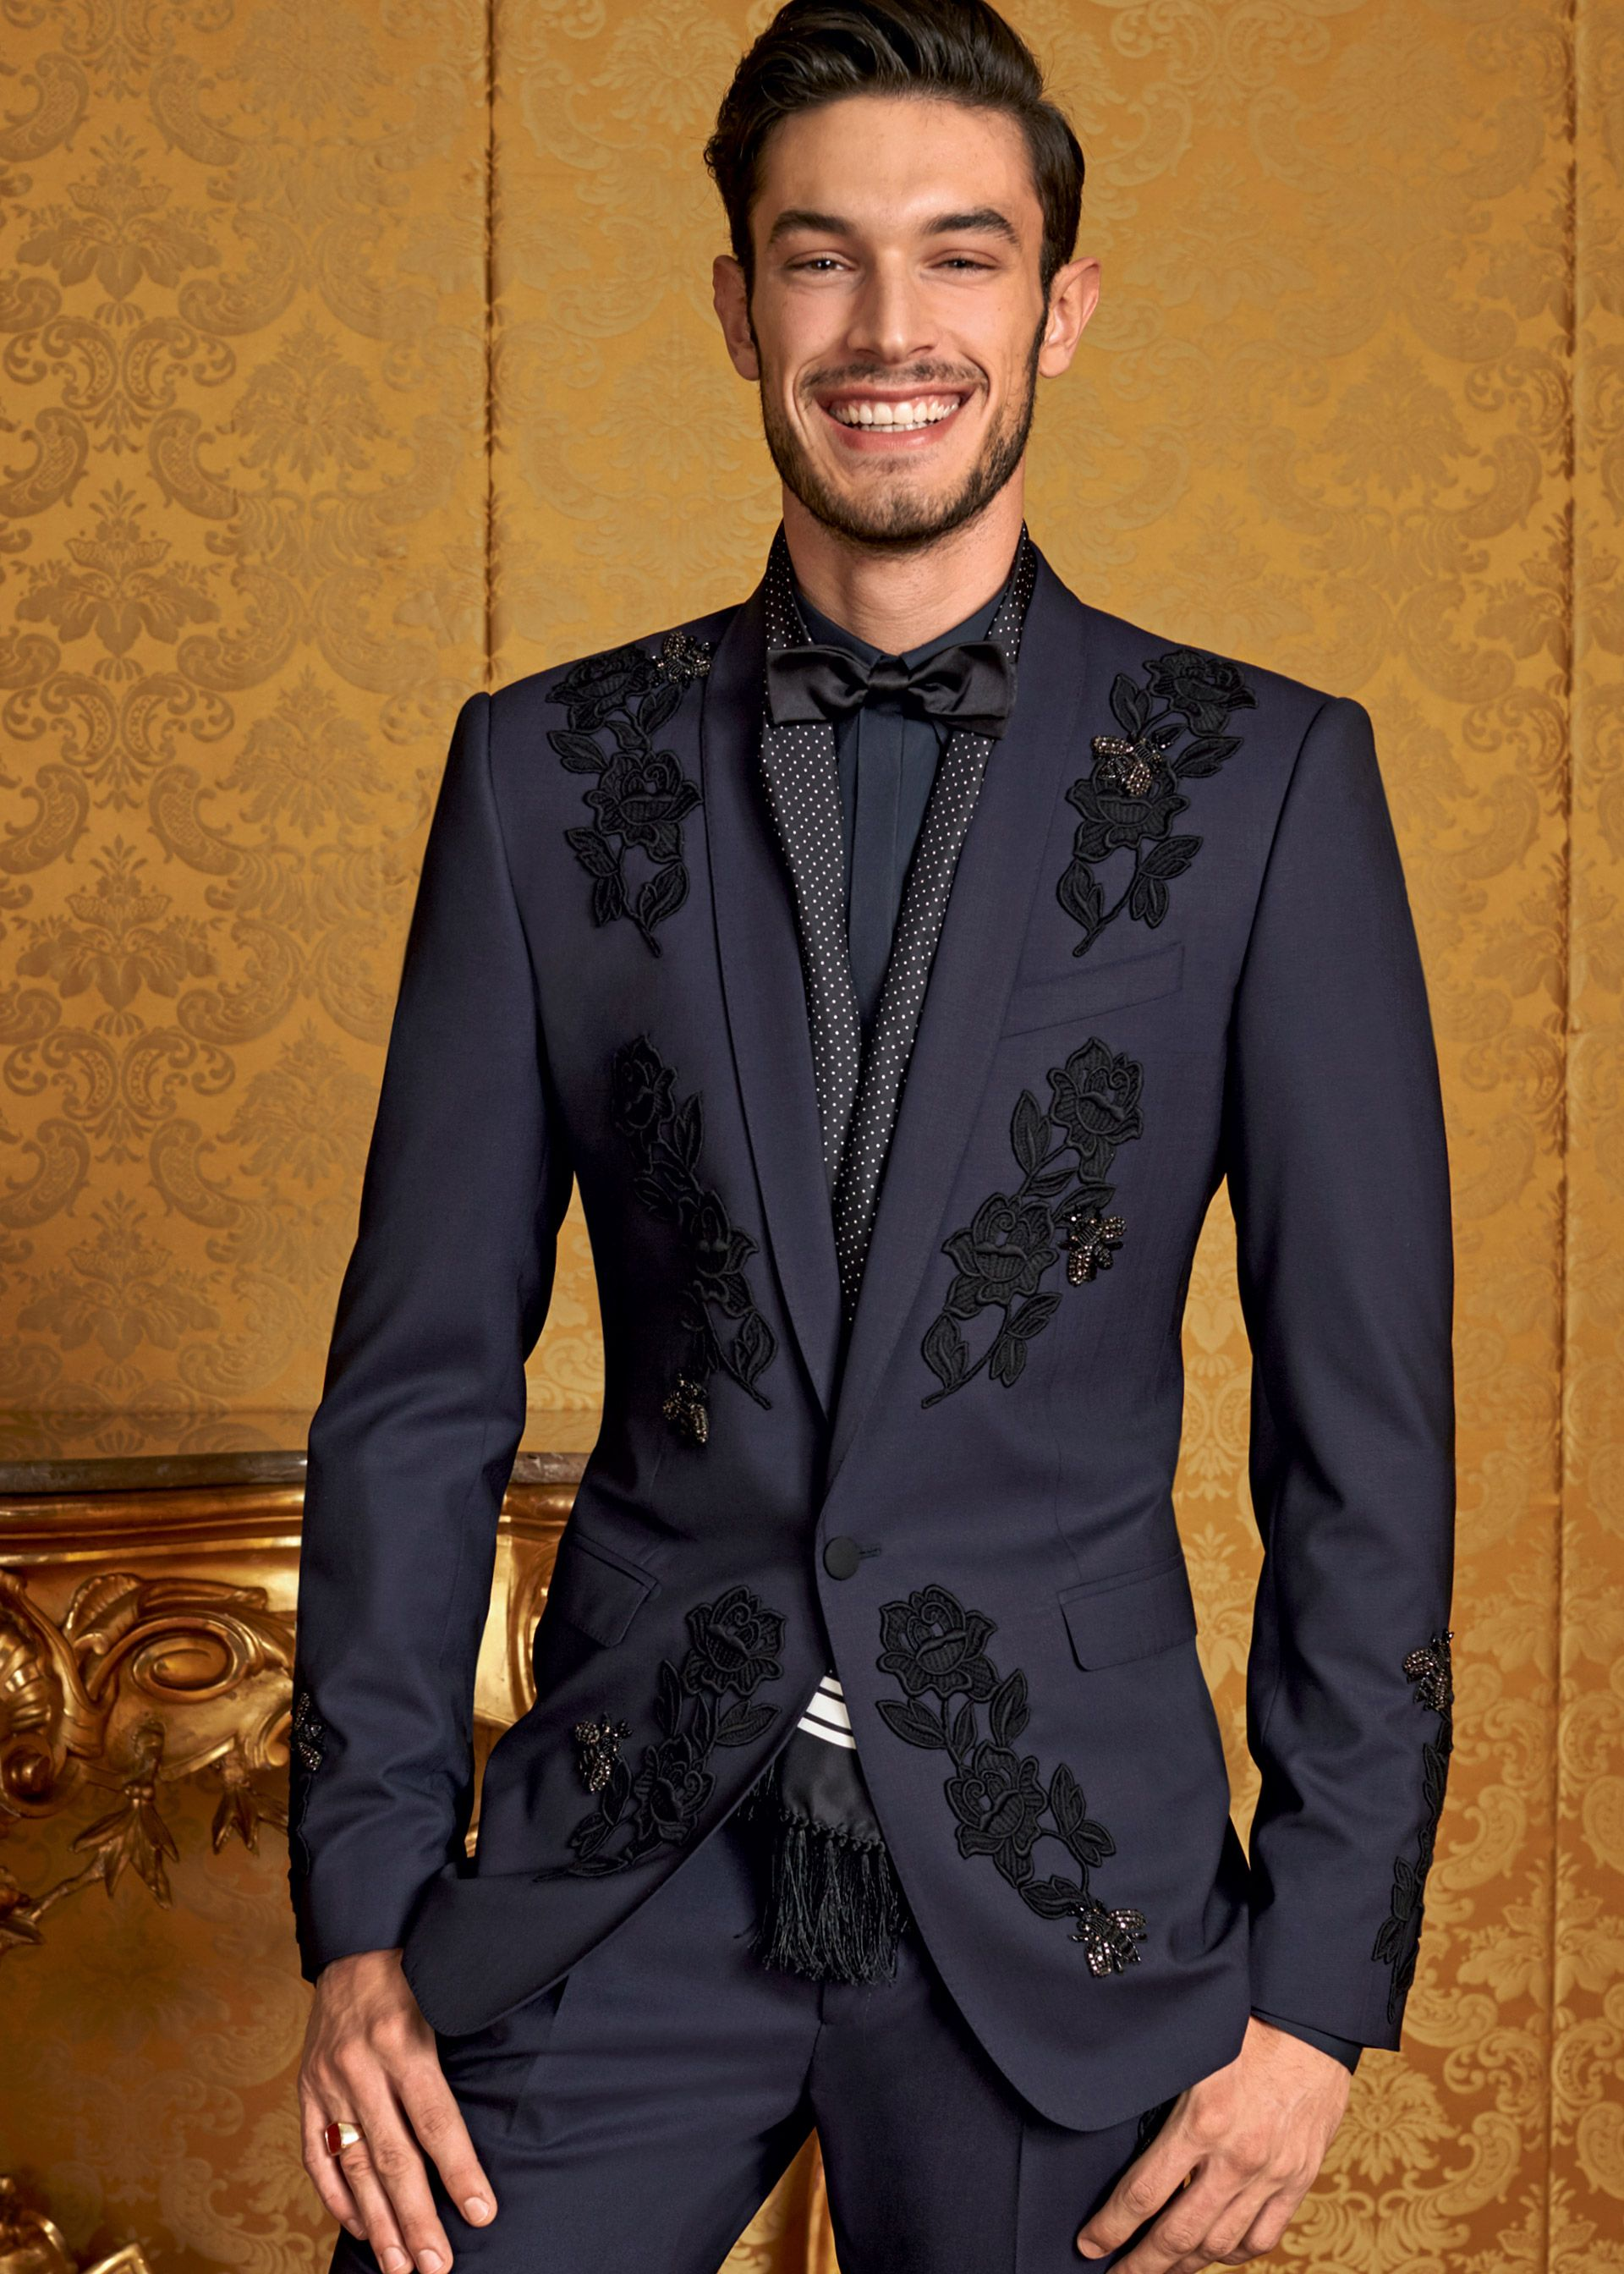 569cc506a2b1 Discover the new Dolce   Gabbana Men s Eccentric tailoring Collection for  Fall Winter 2016 2017 and